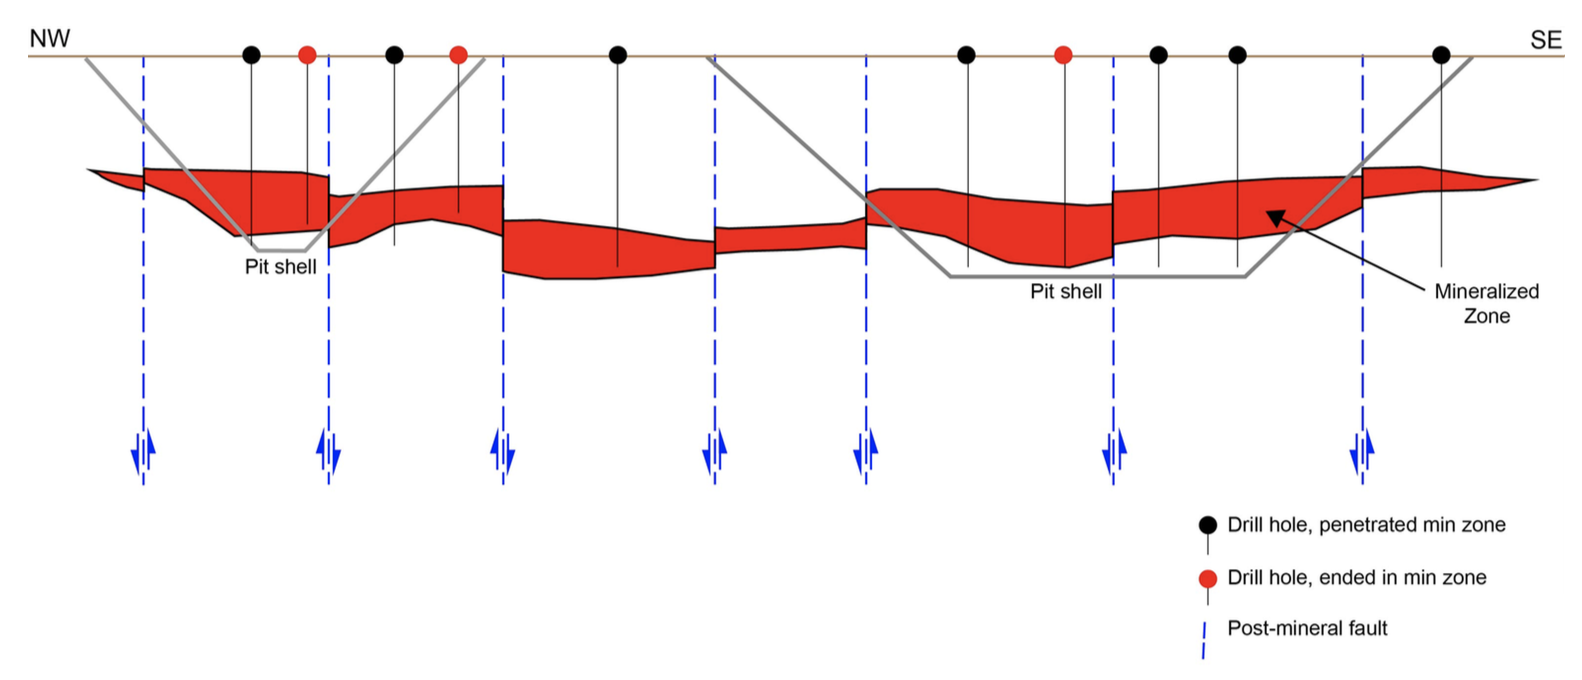 Illustrative Profile of West and East Pits.  A longitudinal slice through the Imperial deposit illustrates the main features of the geological interpretation used to constrain the current resource block model. The pit shell, drill holes and position of the mineralized zone are approximations for illustration purposes only.  A continuous mineralized zone is segmented by a series of northeast oriented, post-mineral faults. Some holes in the drill hole array were noted to end in mineralization. These holes were not used to define the lower or footwall surface of the mineralized zone. Note the sparse drilling between the two pits and the holes drilled in this area ended in mineralization.